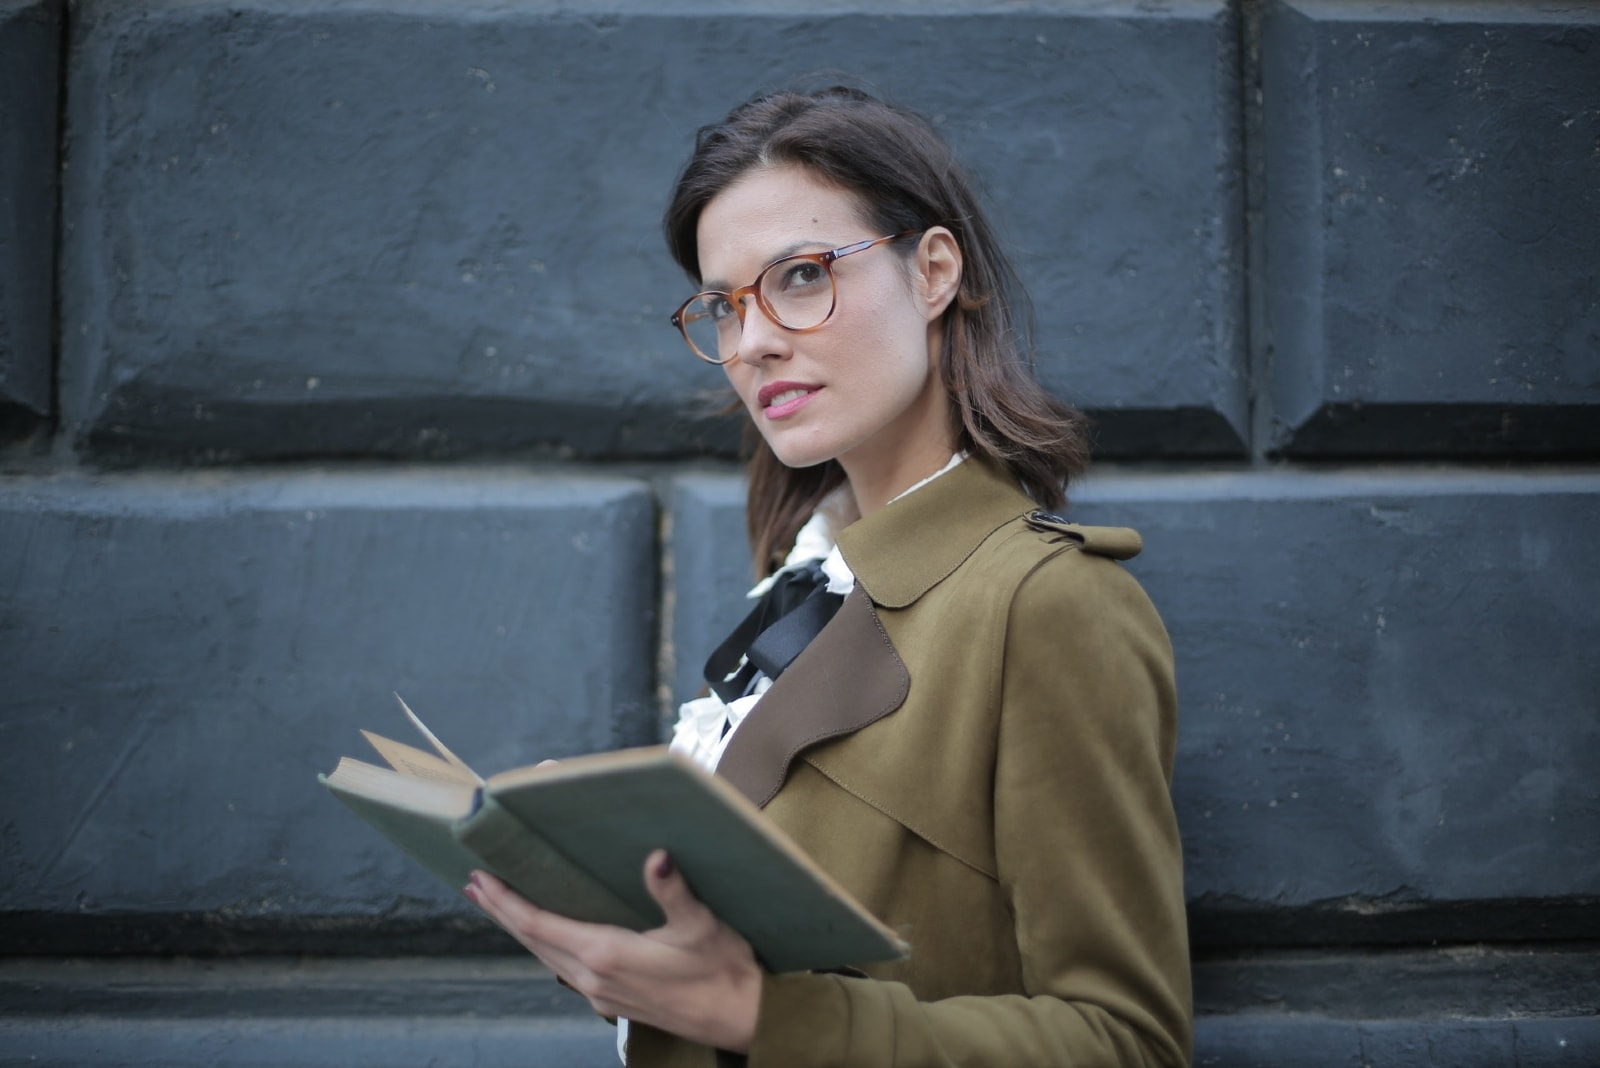 woman with eyeglasses holding open book while standing near wall